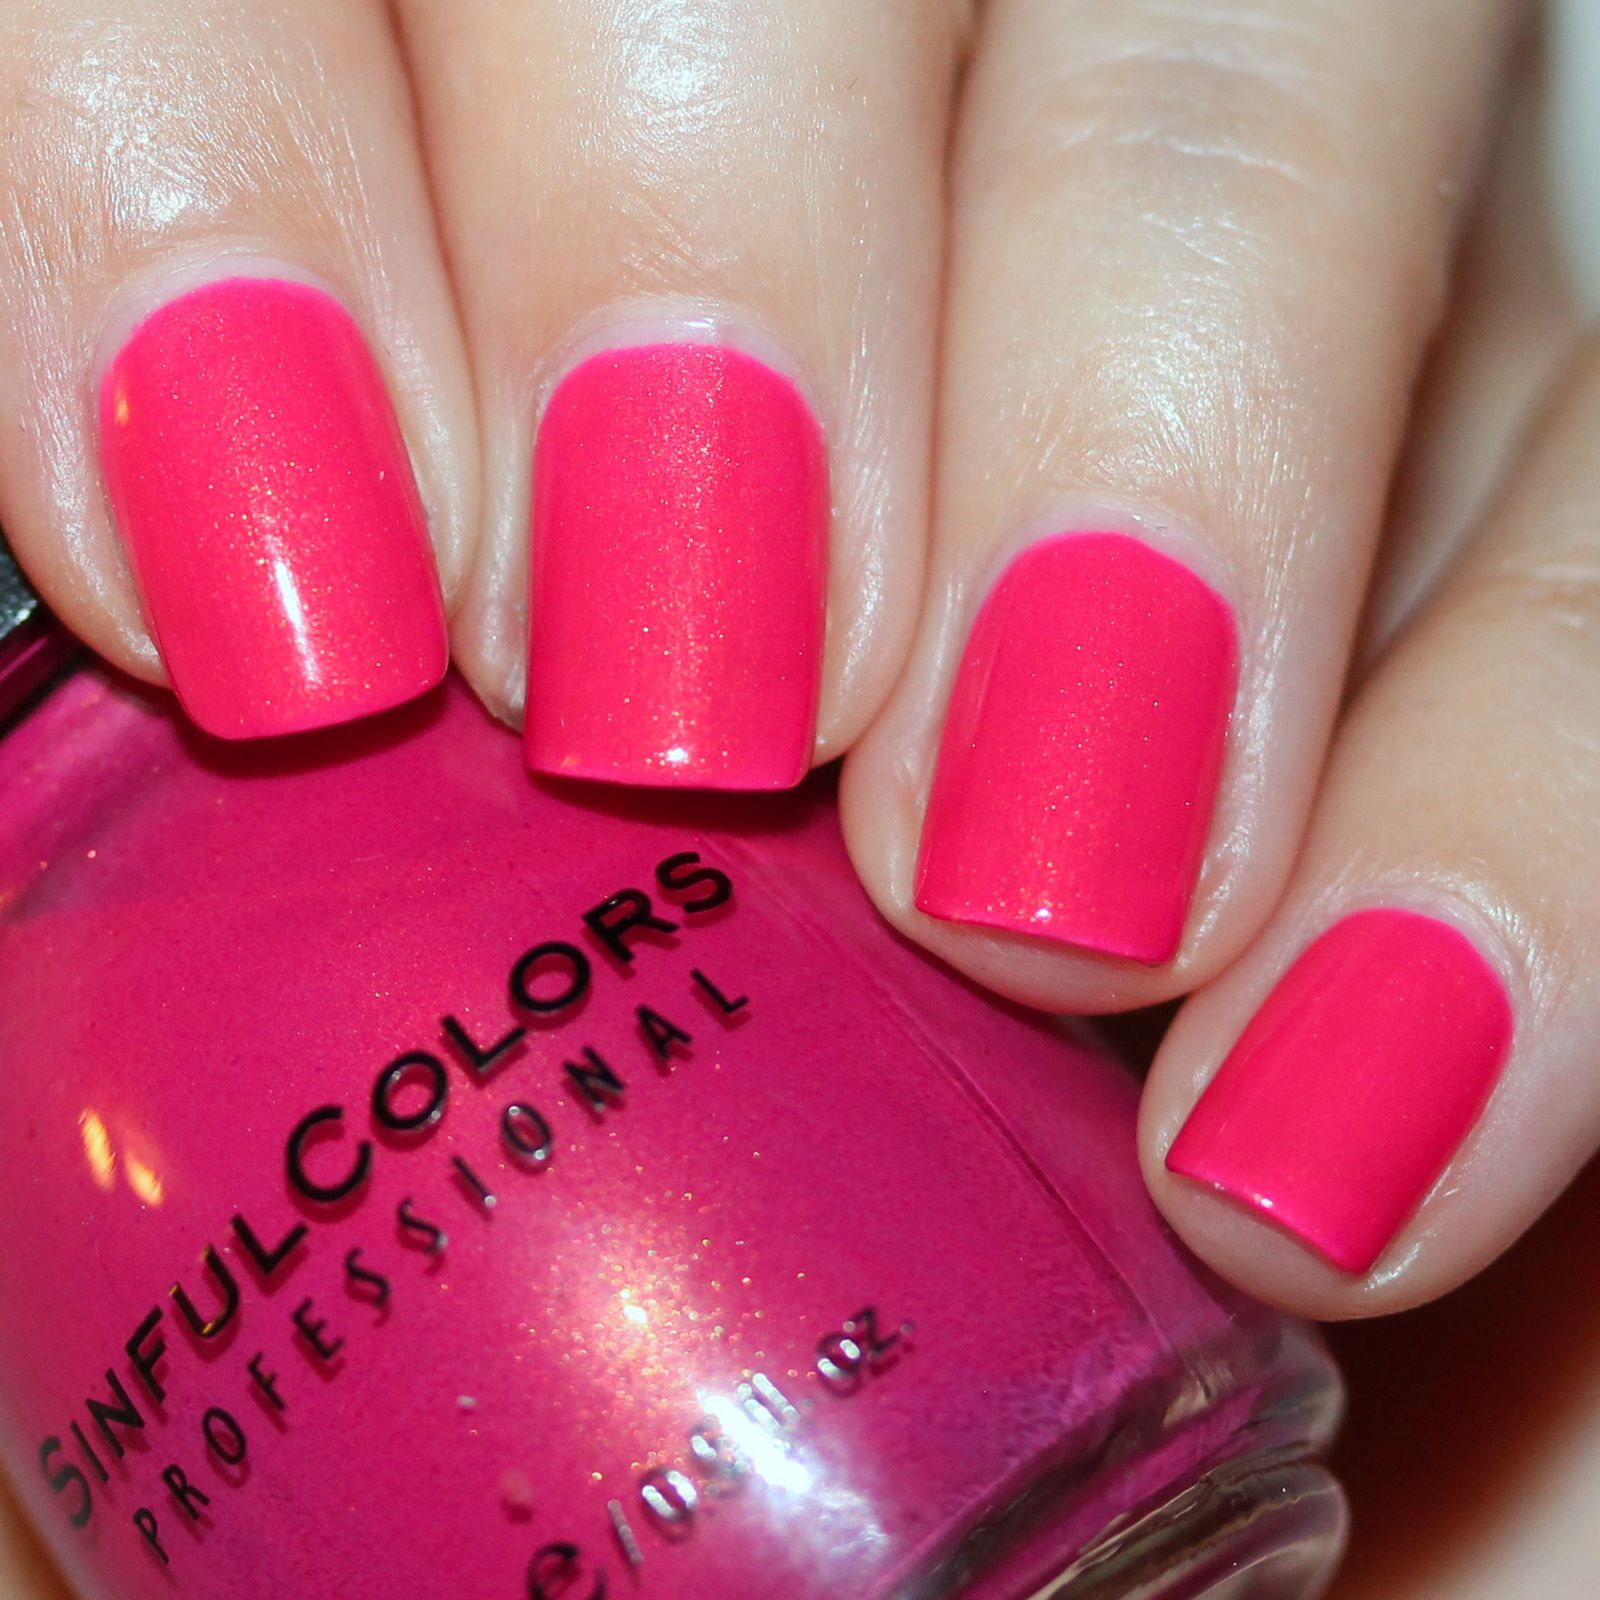 Sally Hansen Complete Care 4-in-1 Extra Moisturizing Nail Treatment / Sinful Colors Cream Pink / Poshe Top Coat